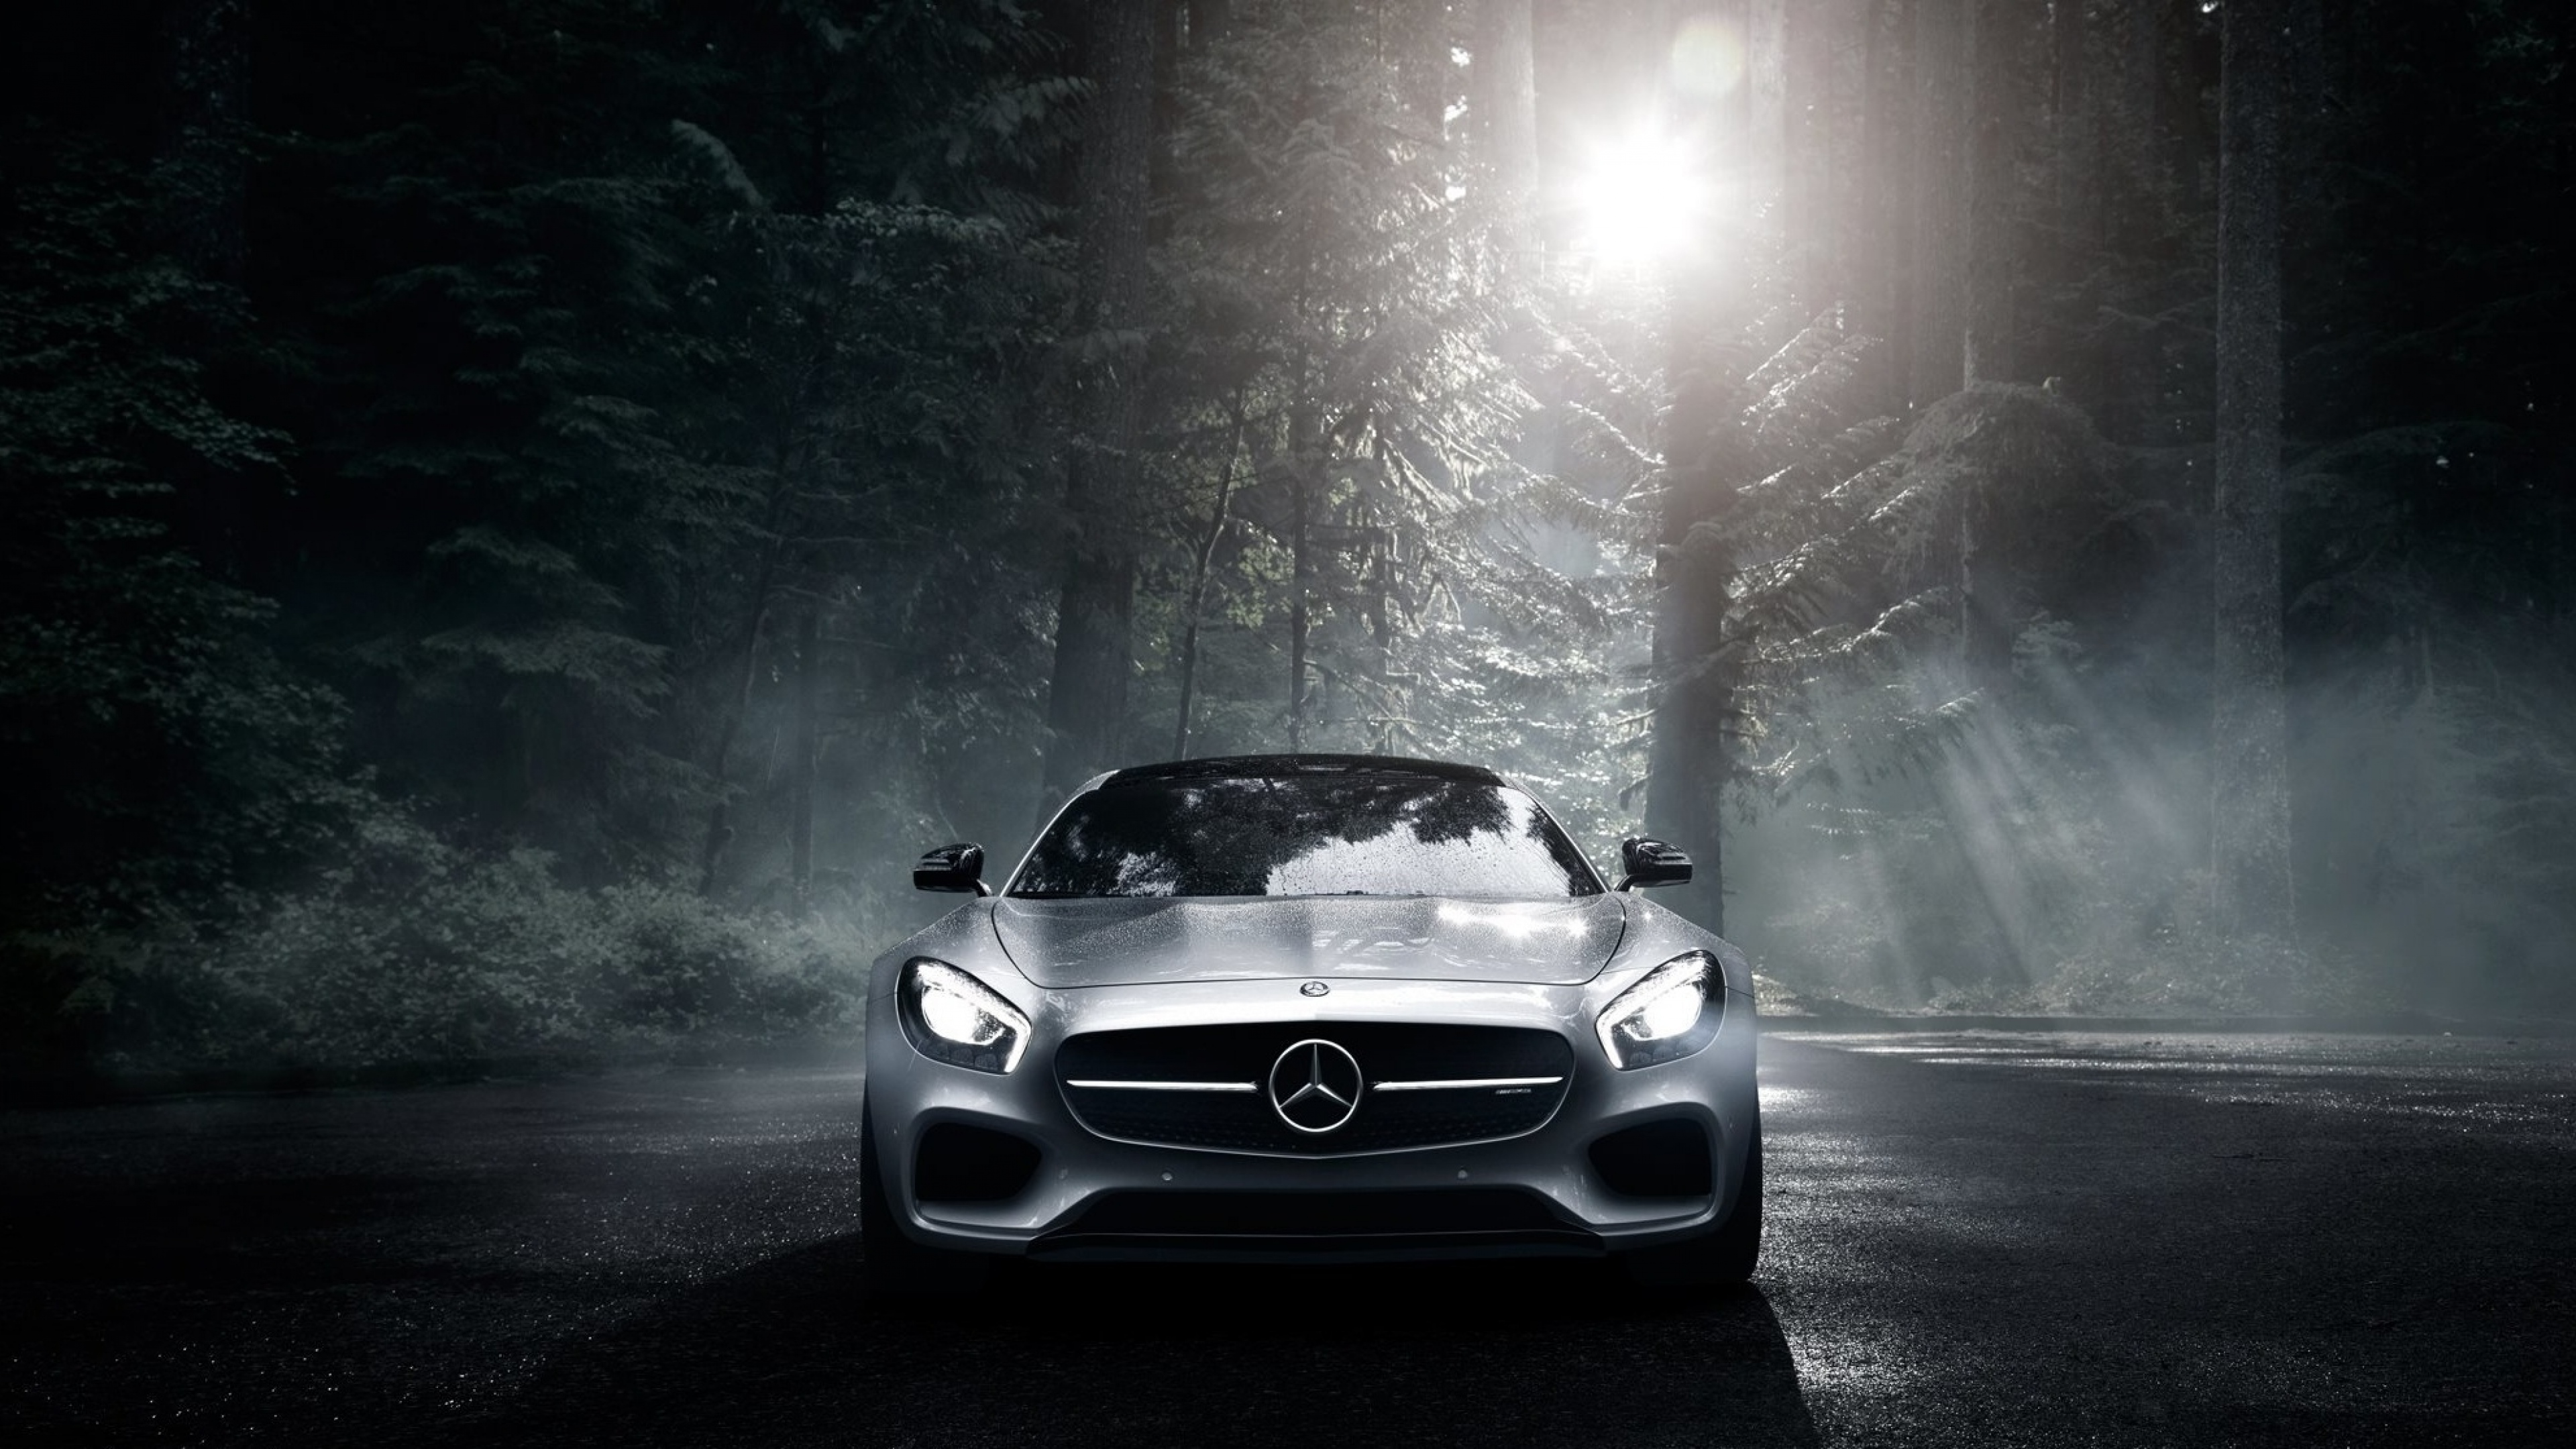 mercedes_benz_mercedes_amg_front_view_silver_wood_100115_3840x2160